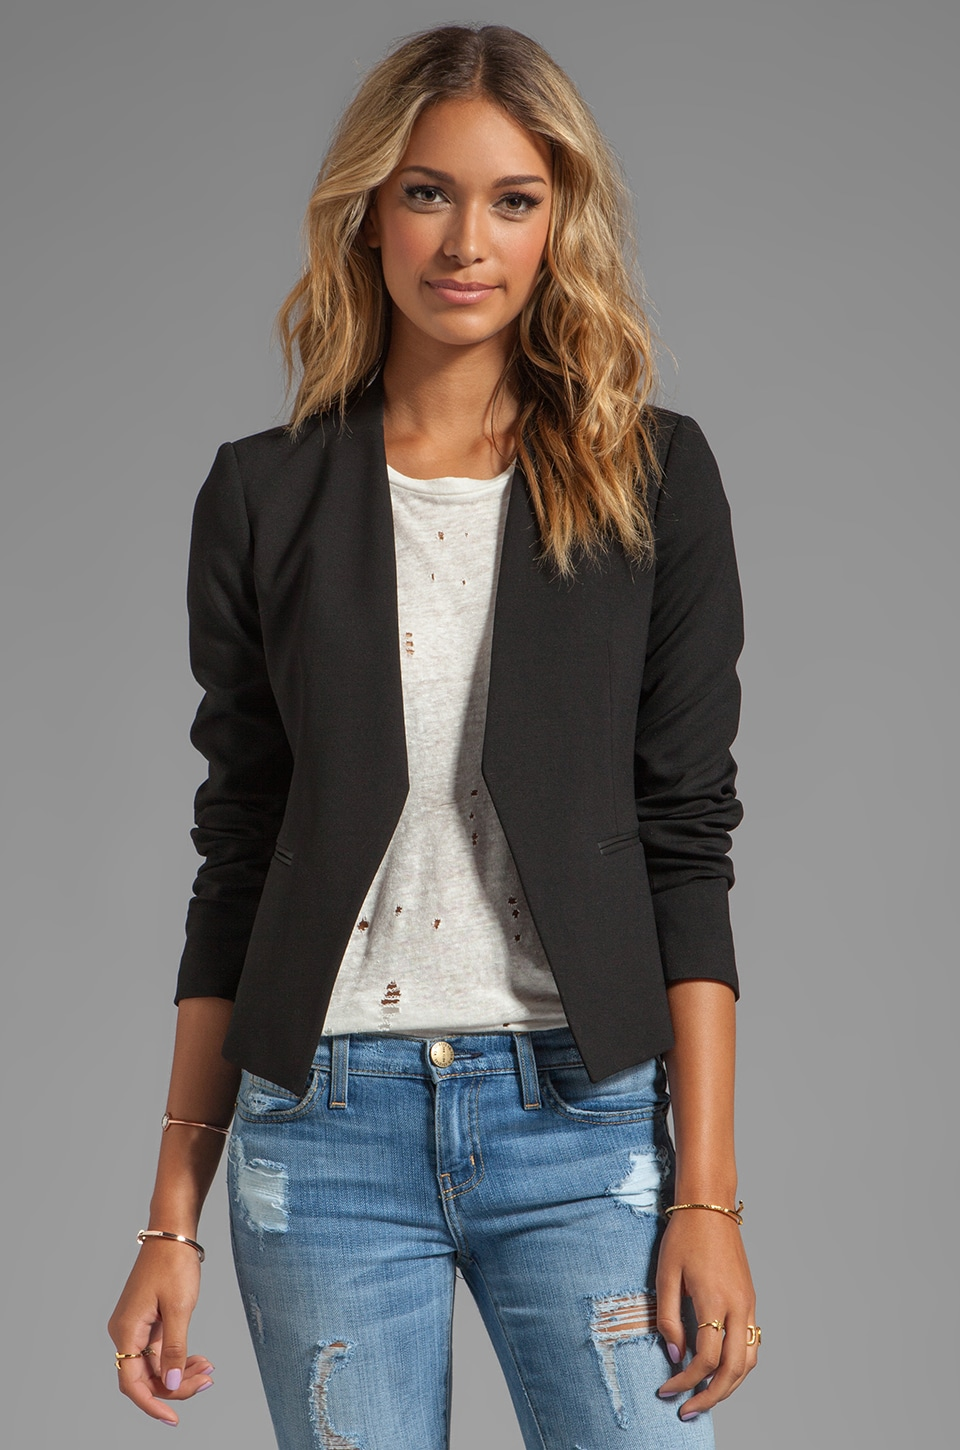 Theory Lanai LCK Blazer in Black